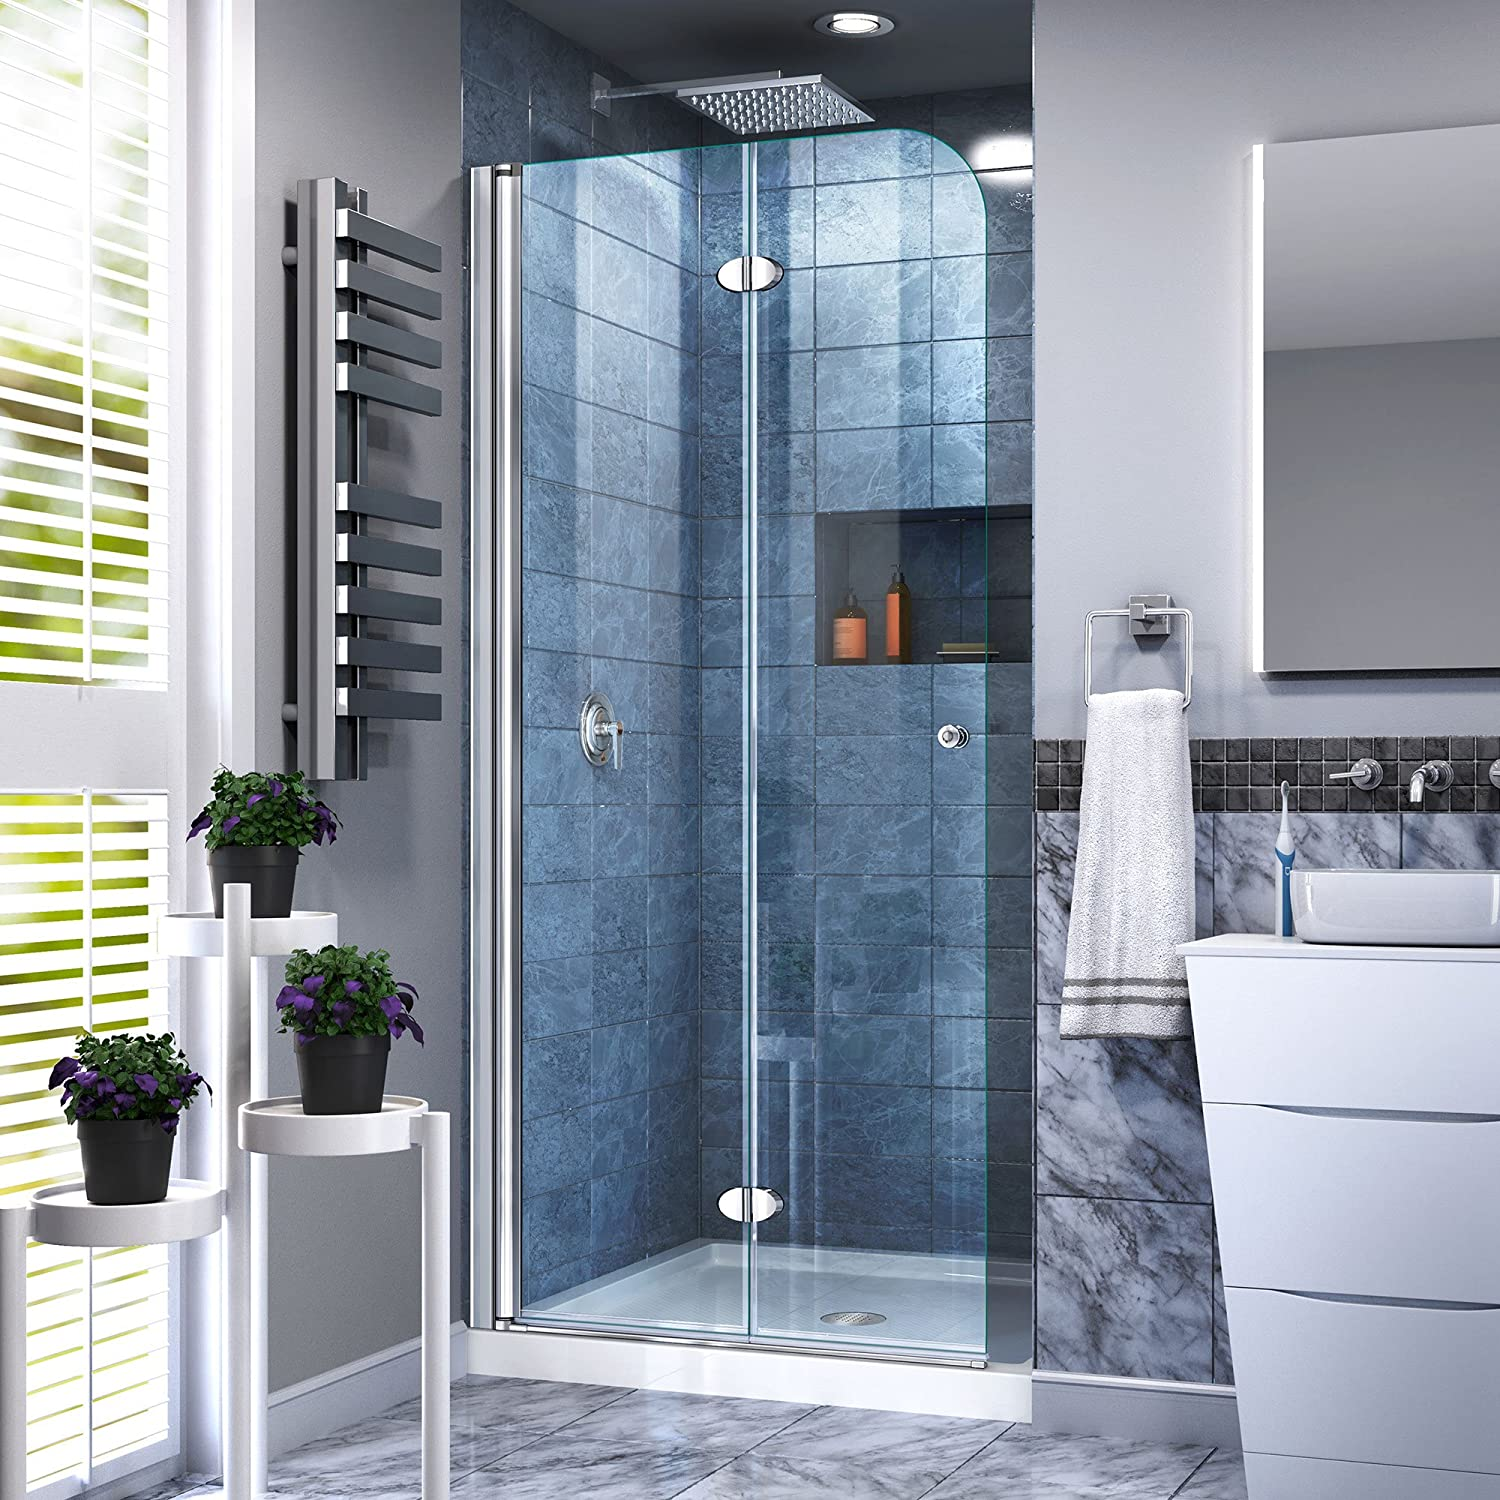 DreamLine Aqua Fold 29 1 2 in. W x 72 in. H Frameless Bi-Fold Shower Door in Chrome